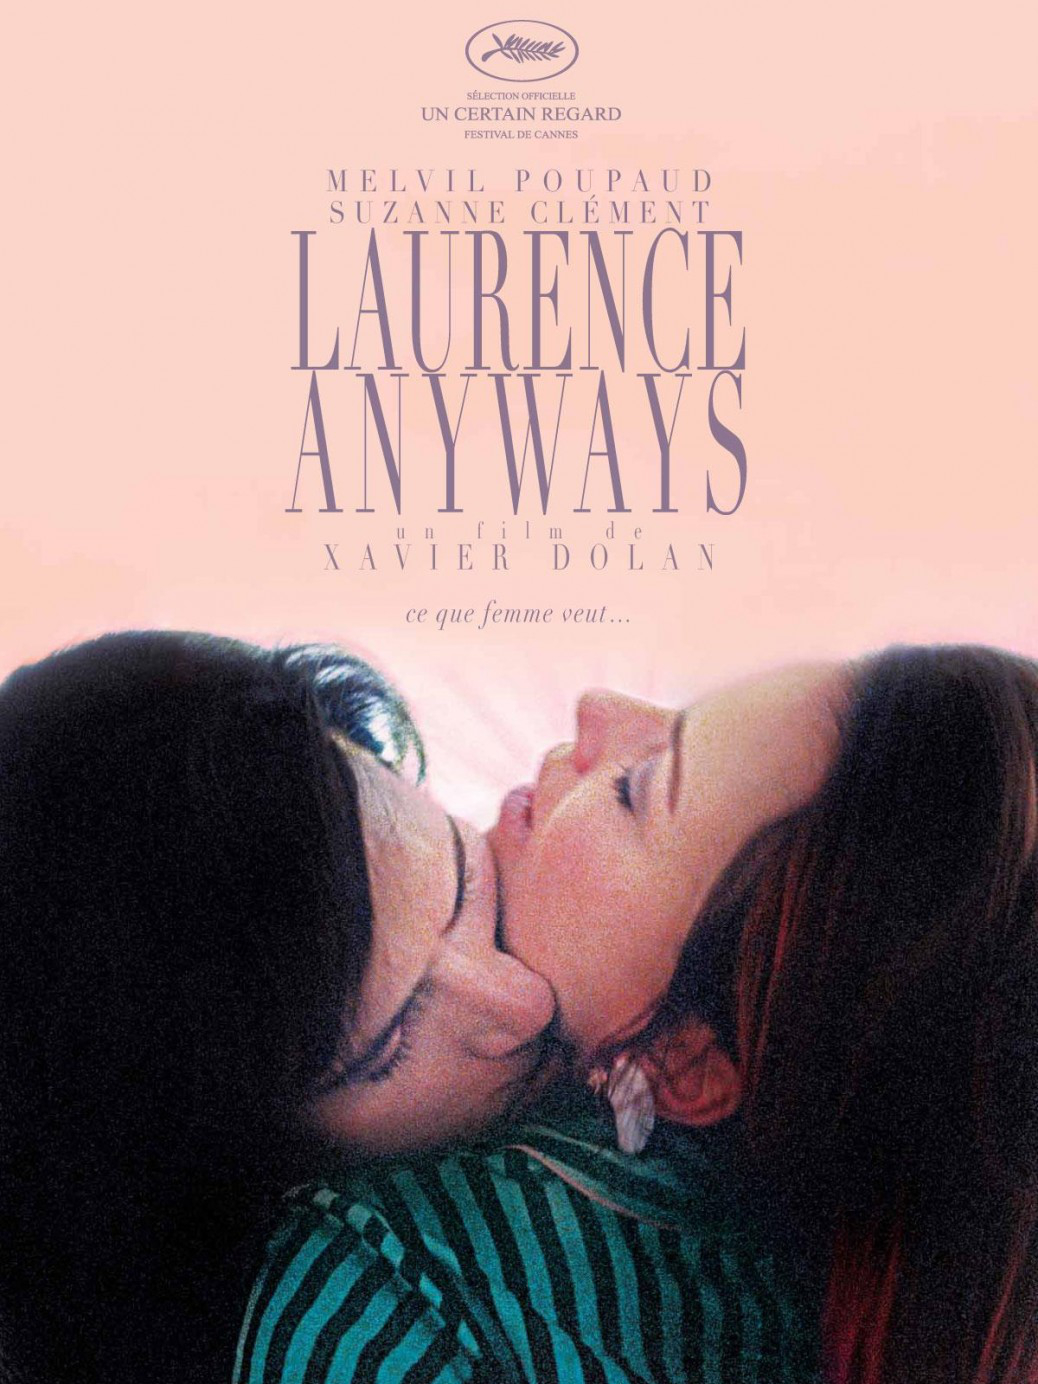 Film Fest Gent Laurence Anyways